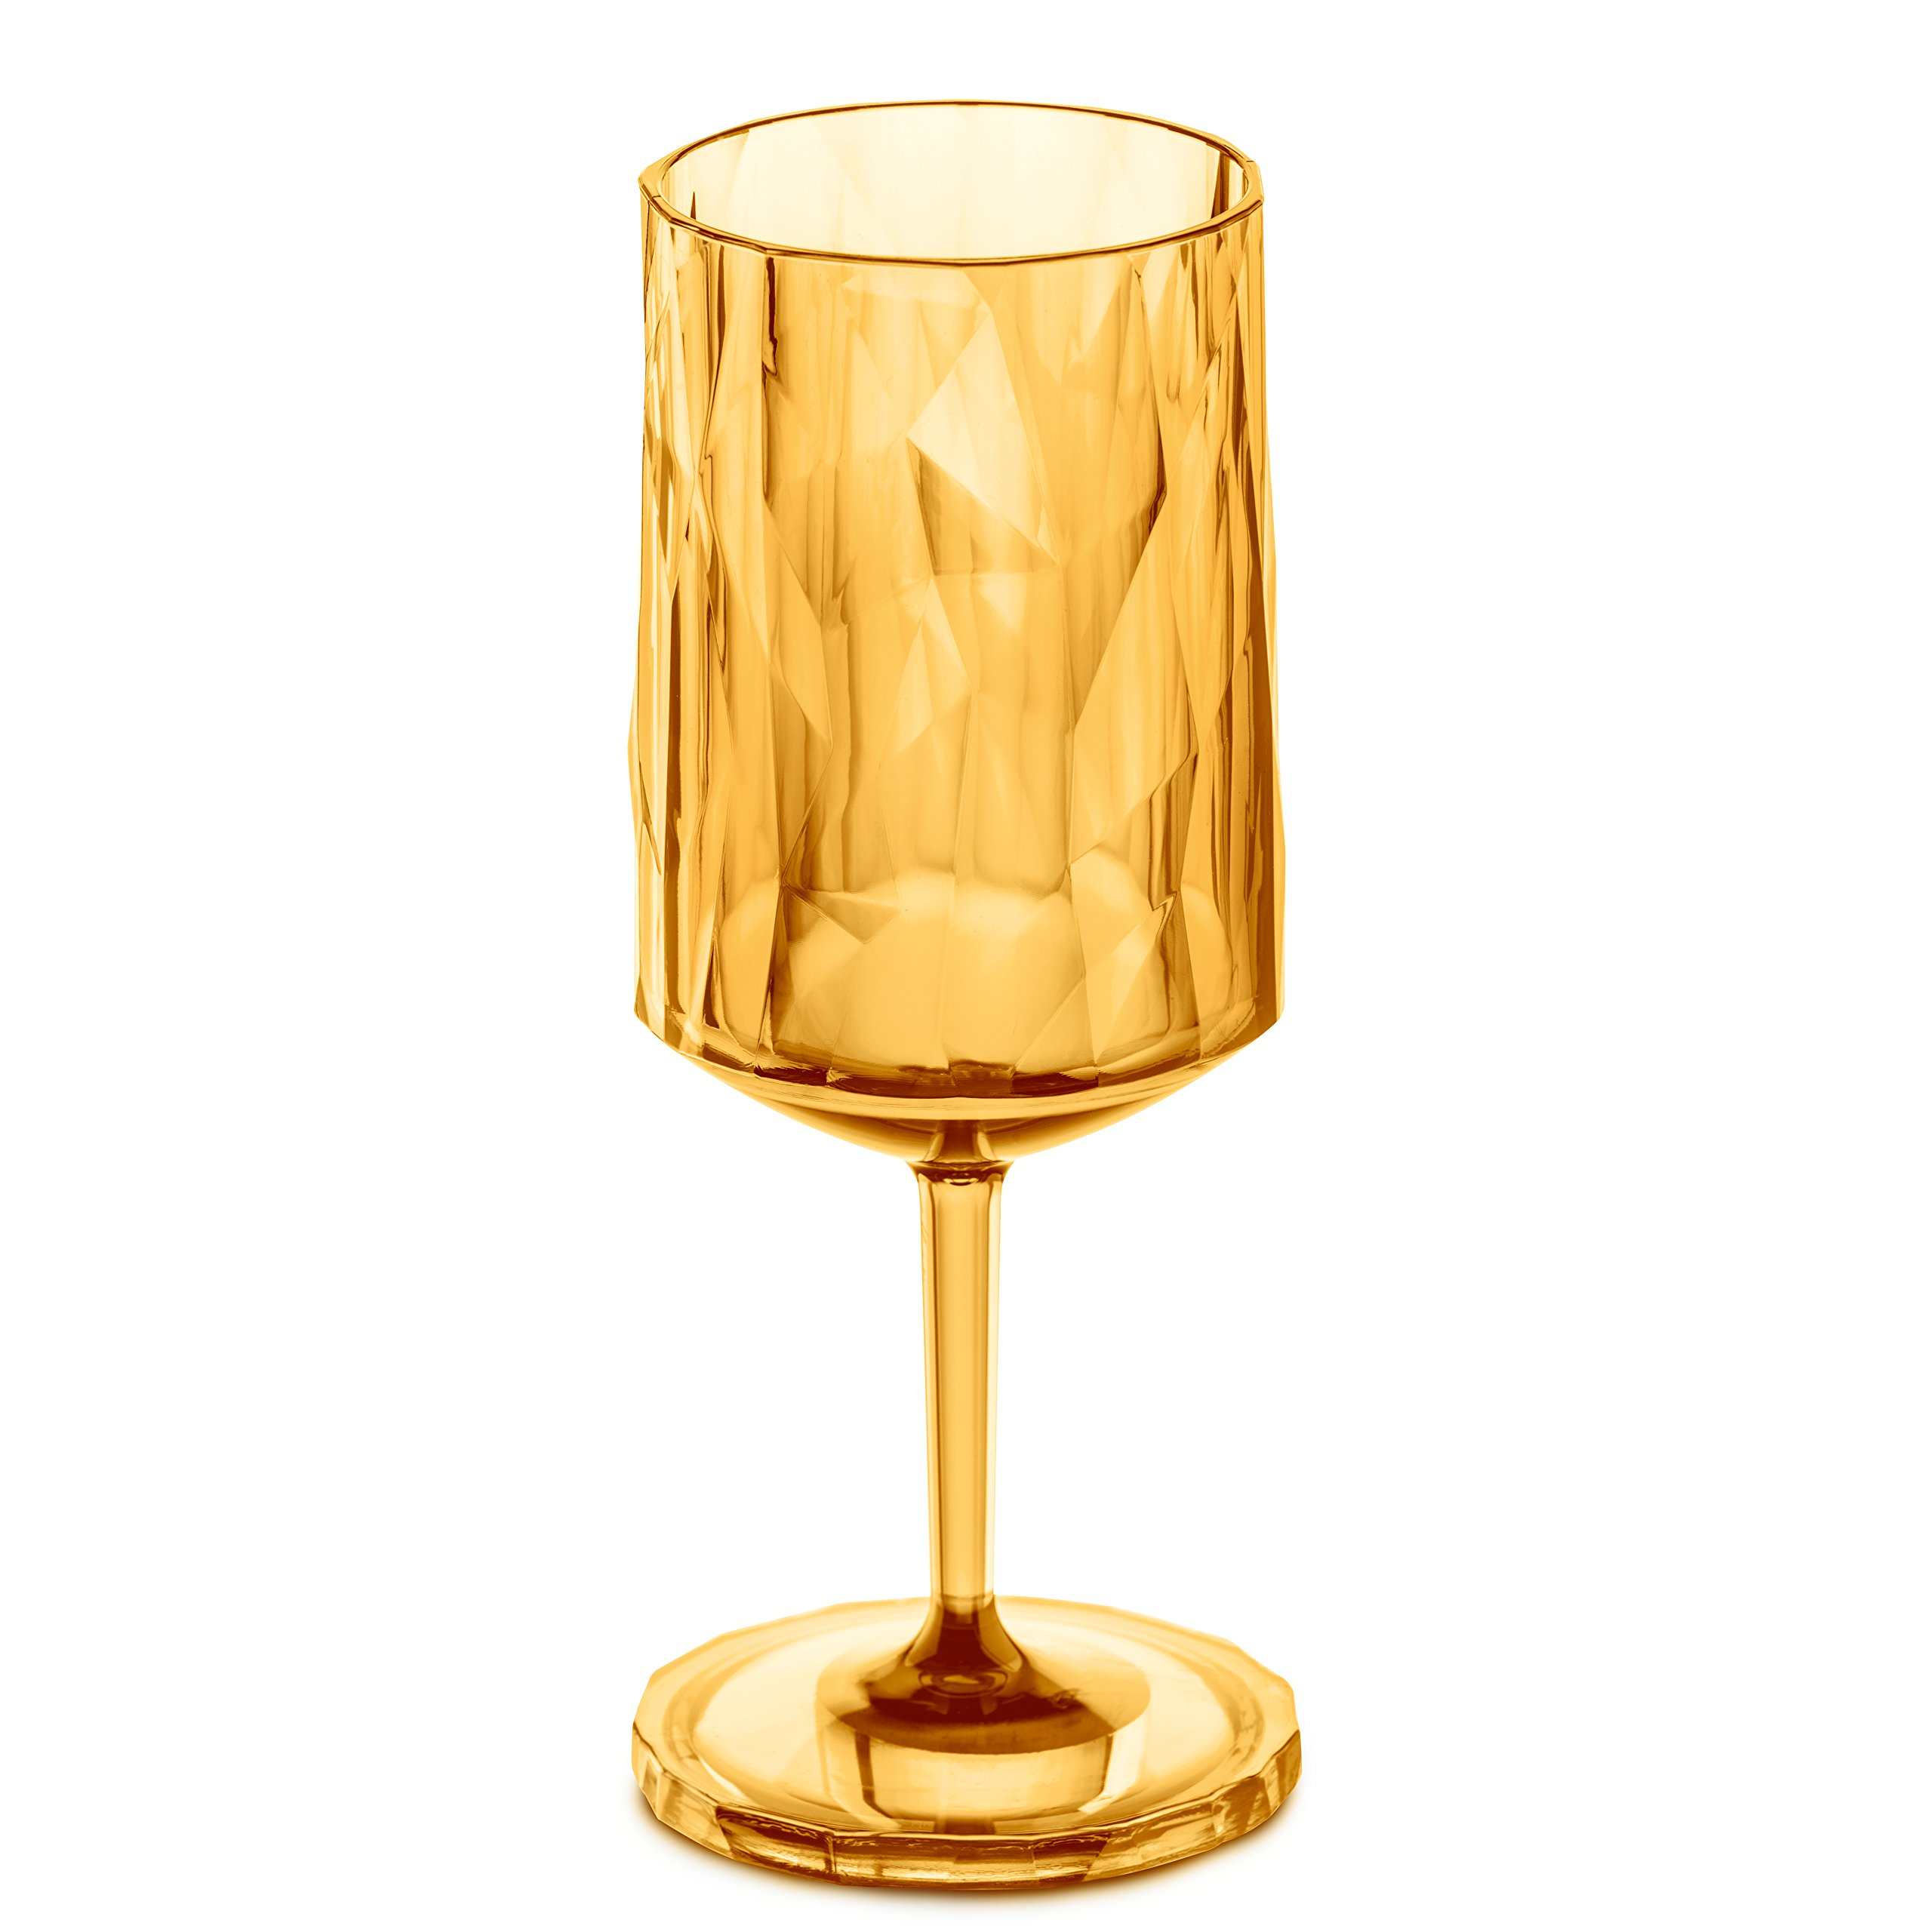 Koziol 3401651 Club NO. 4 350ml Wine Glass, One Size, Transparent Amber